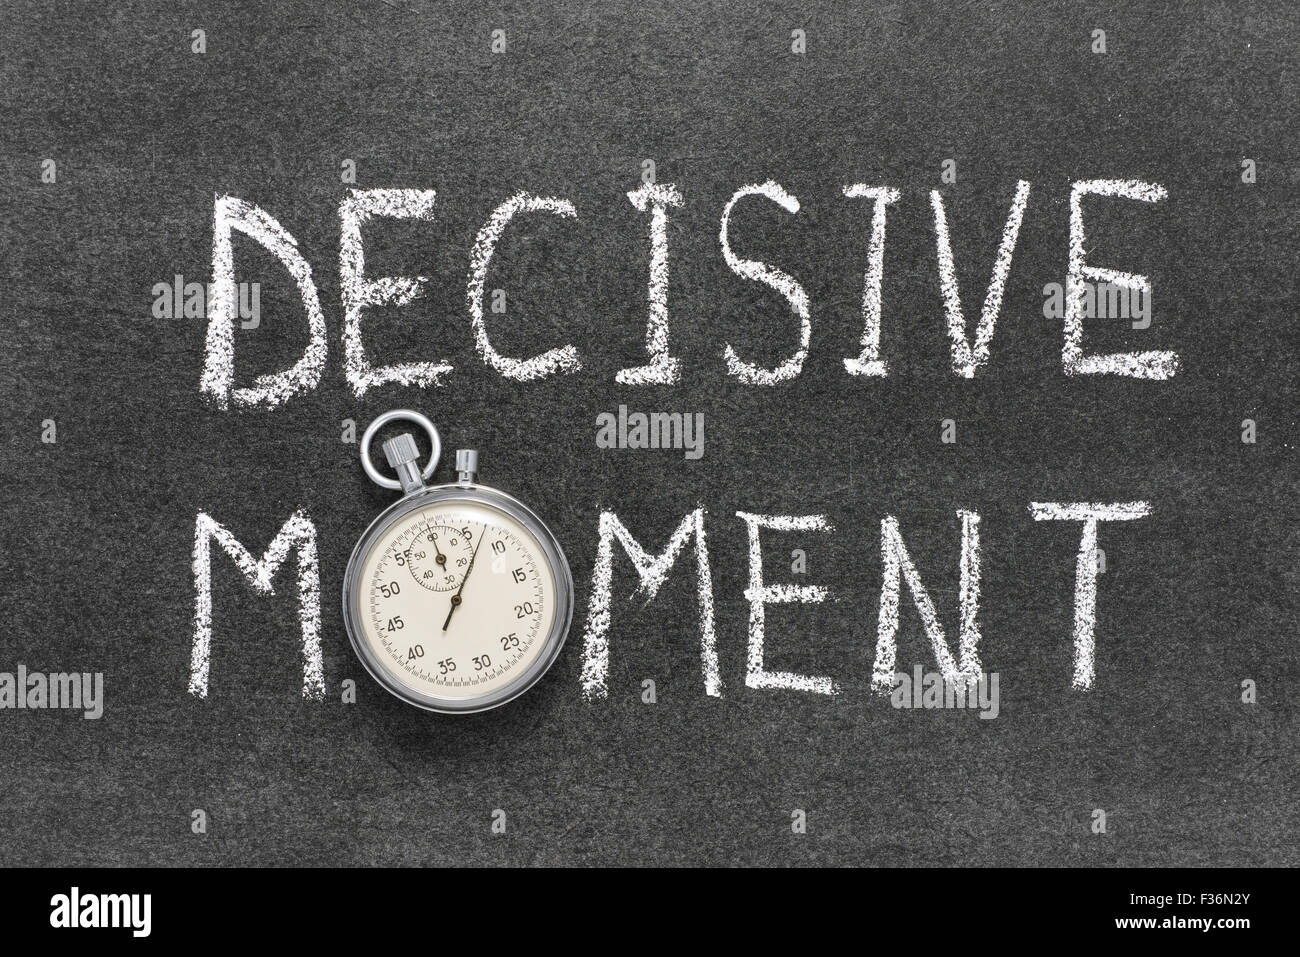 decisive moment phrase handwritten on chalkboard with vintage precise stopwatch used instead of O - Stock Image